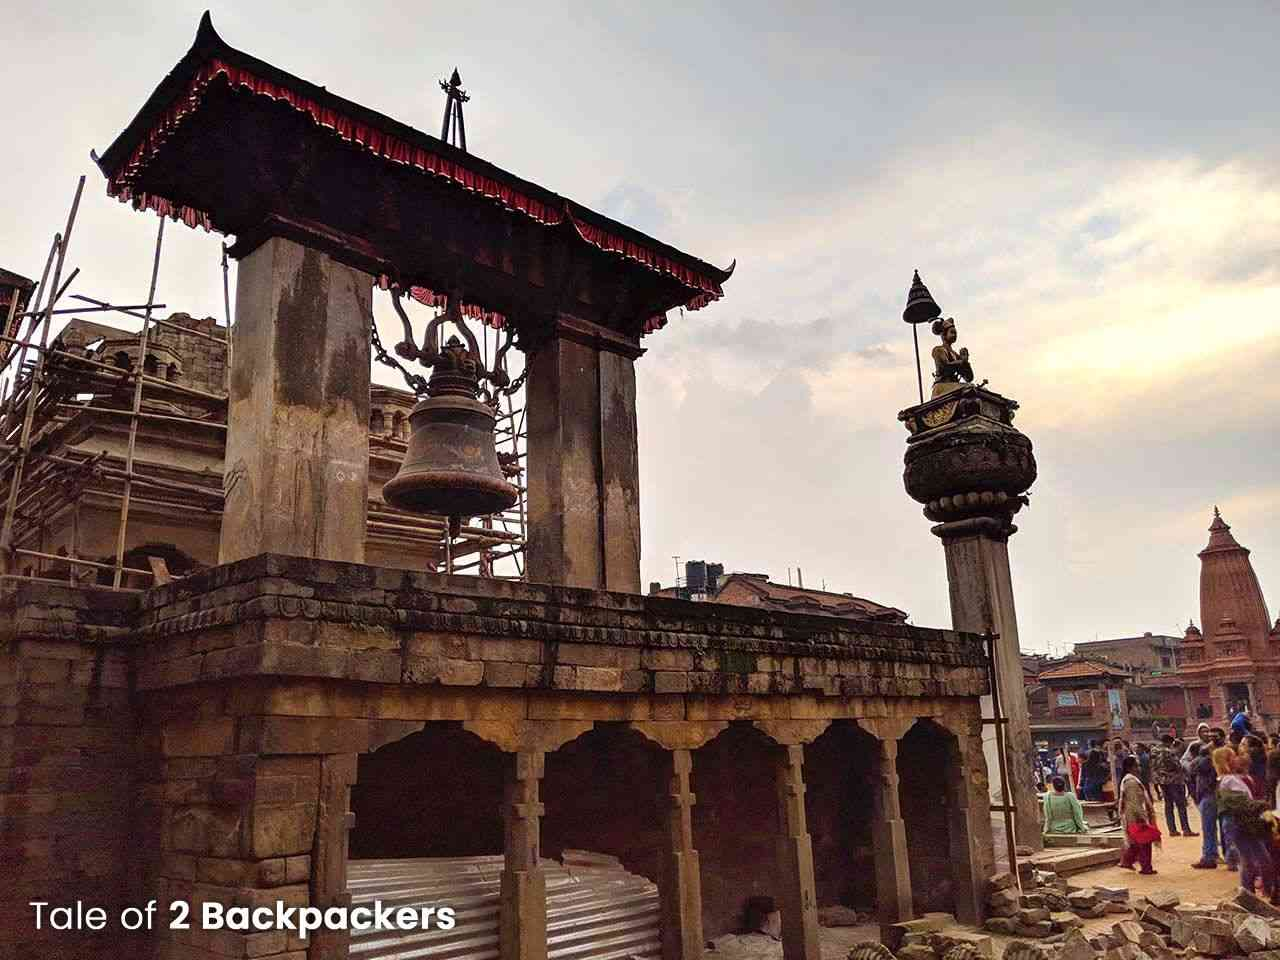 Taleju Bell and statue of King Bhupatindra Malla at Bhaktapur Durbar Square